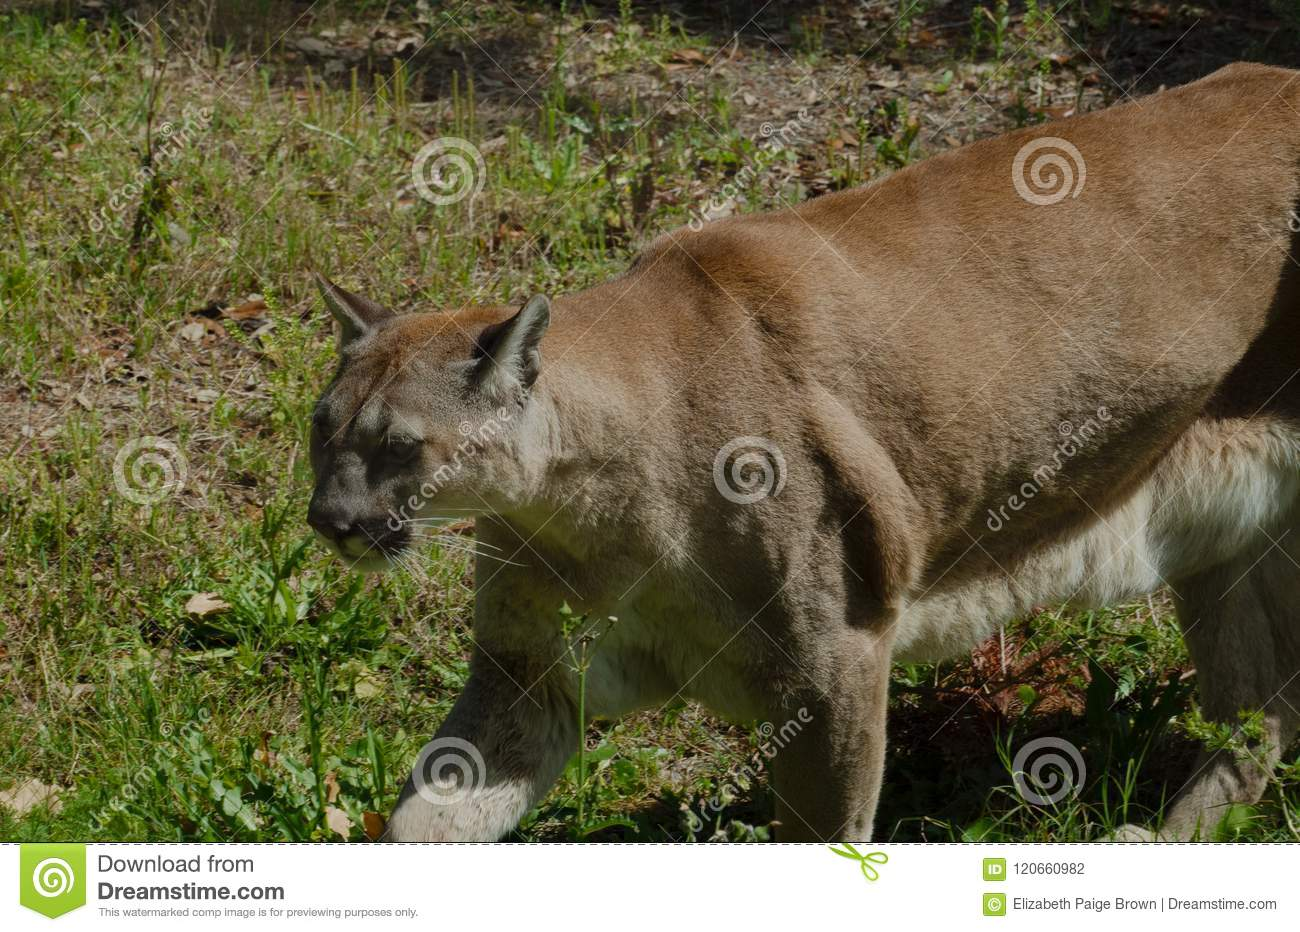 566eafc0858 Endangered Florida panther stock photo. Image of strolls - 120660982